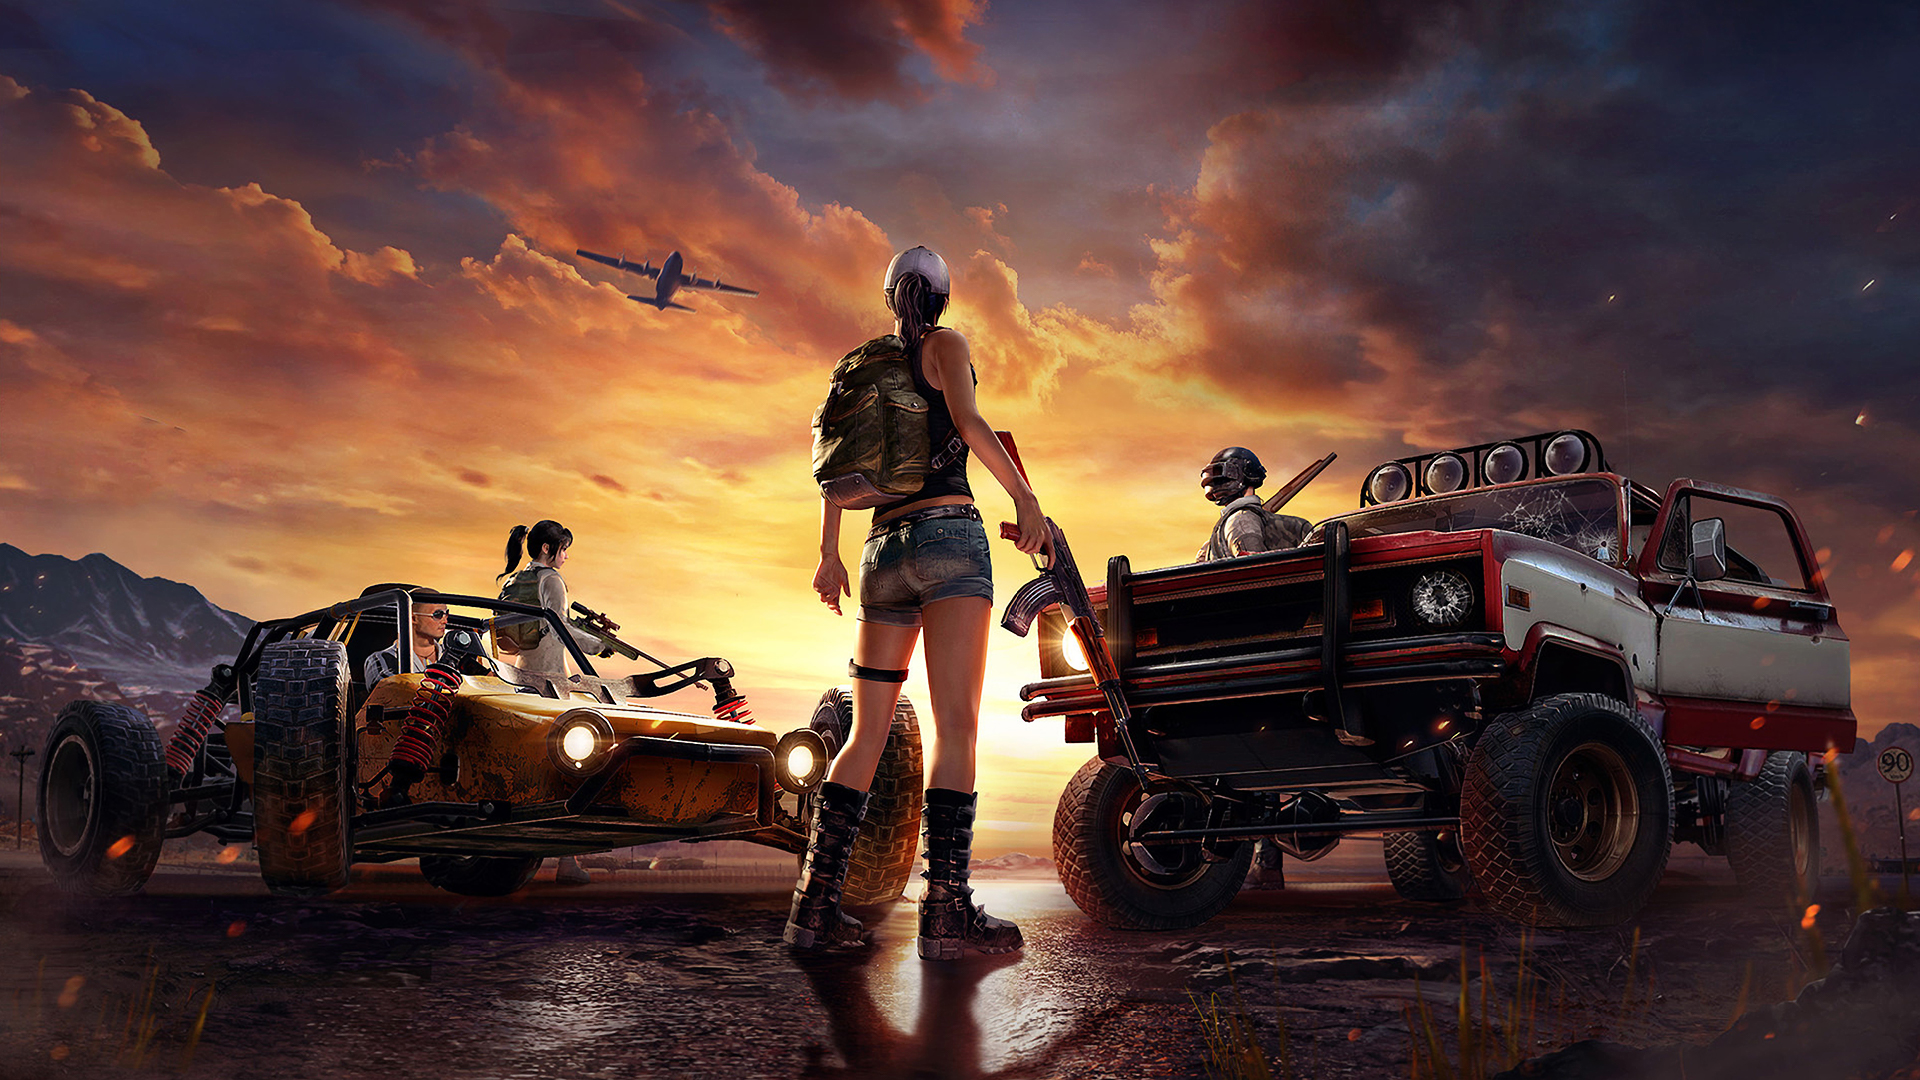 Playerunknown S Battlegrounds Wallpaper M4: 1366x768 PlayerUnknowns Battlegrounds Art 1366x768